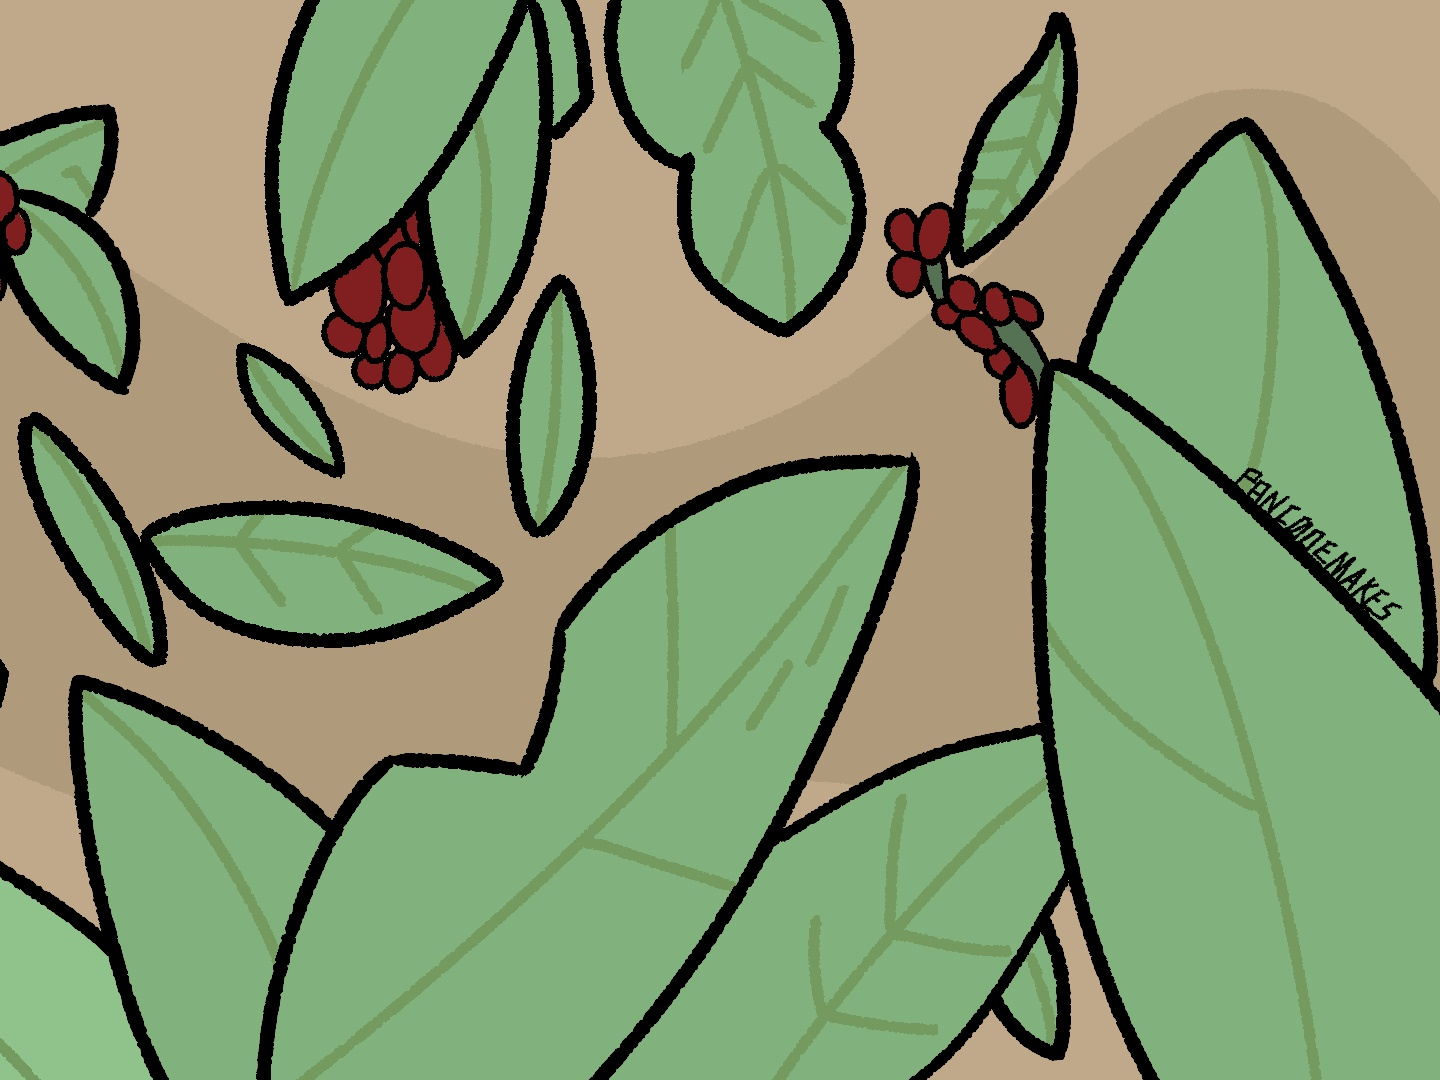 Plant Exercise Illustration greenery berries clip studio paint plants illustration simple